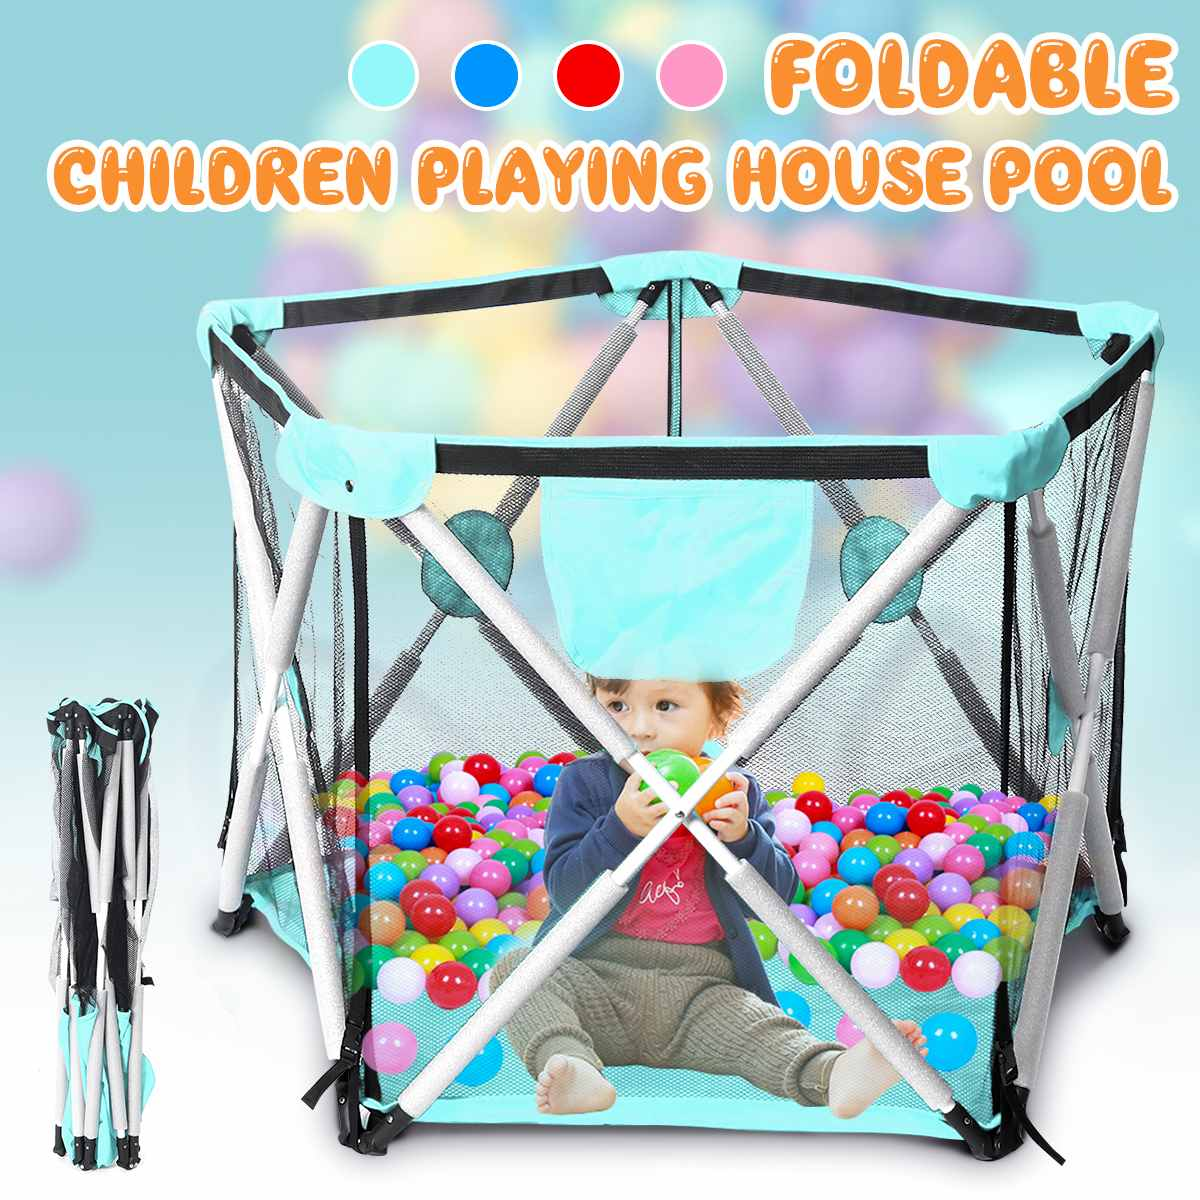 Folding Children Playing House Baby Playpen Portable Outdoor Indoor Toddler Game Newborn Baby Pool Fence 115x78cm 4 Colors